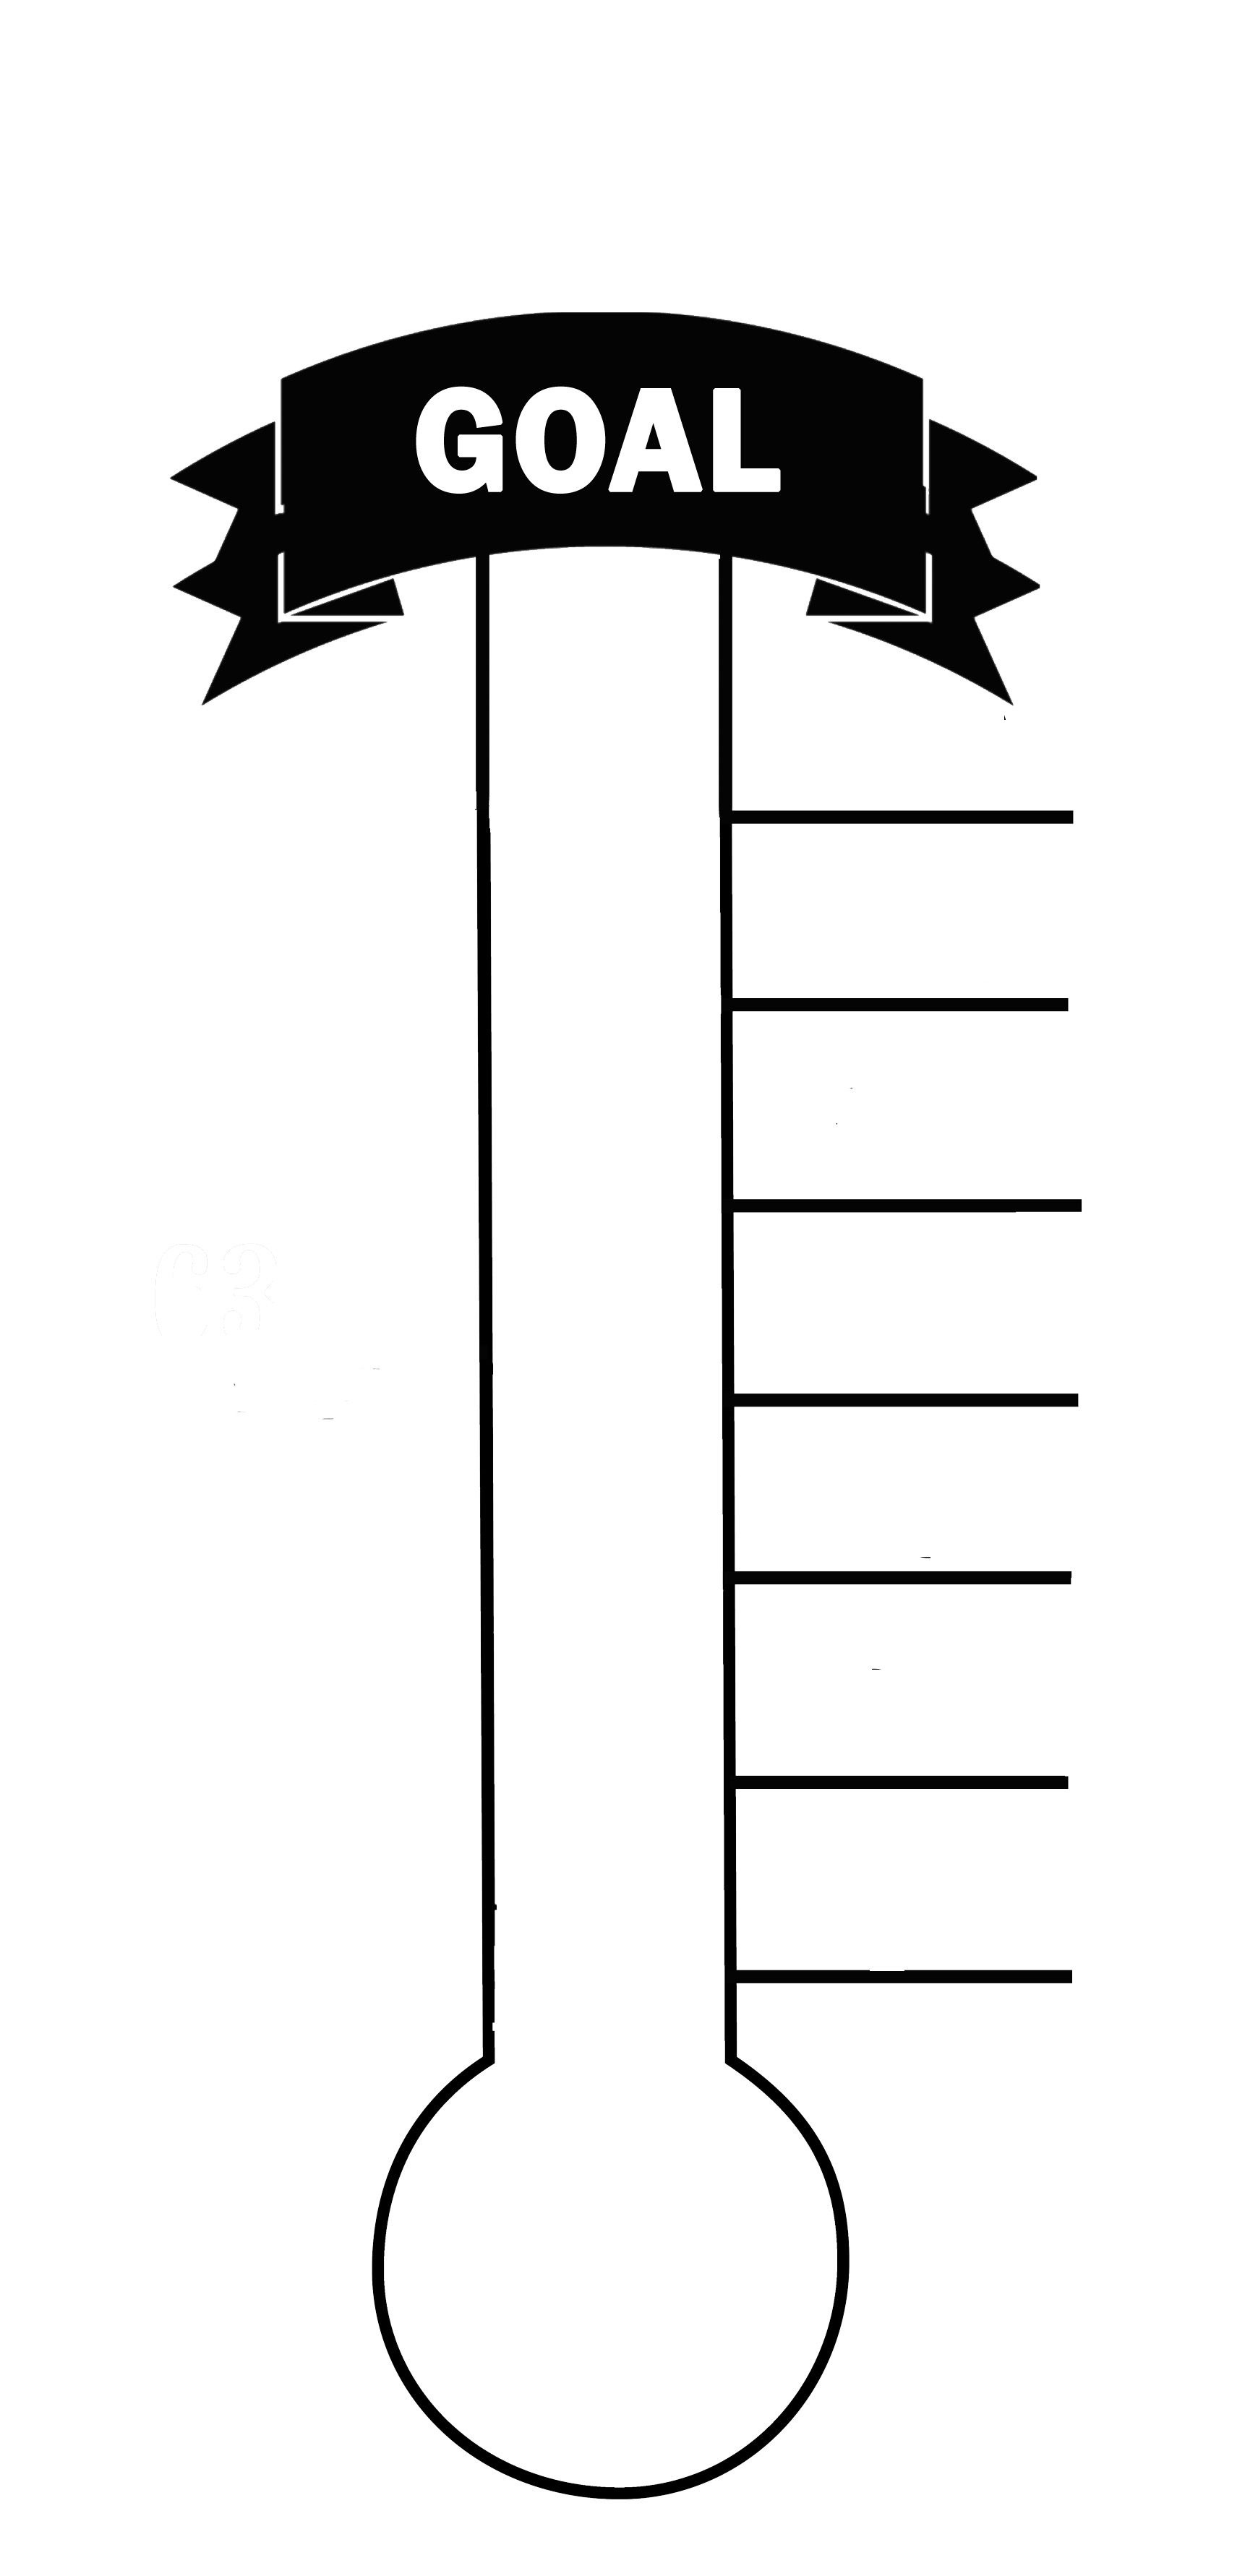 Here's A Great Way To Encourage Your Church Or Small Group! Print - Free Printable Thermometer Goal Chart